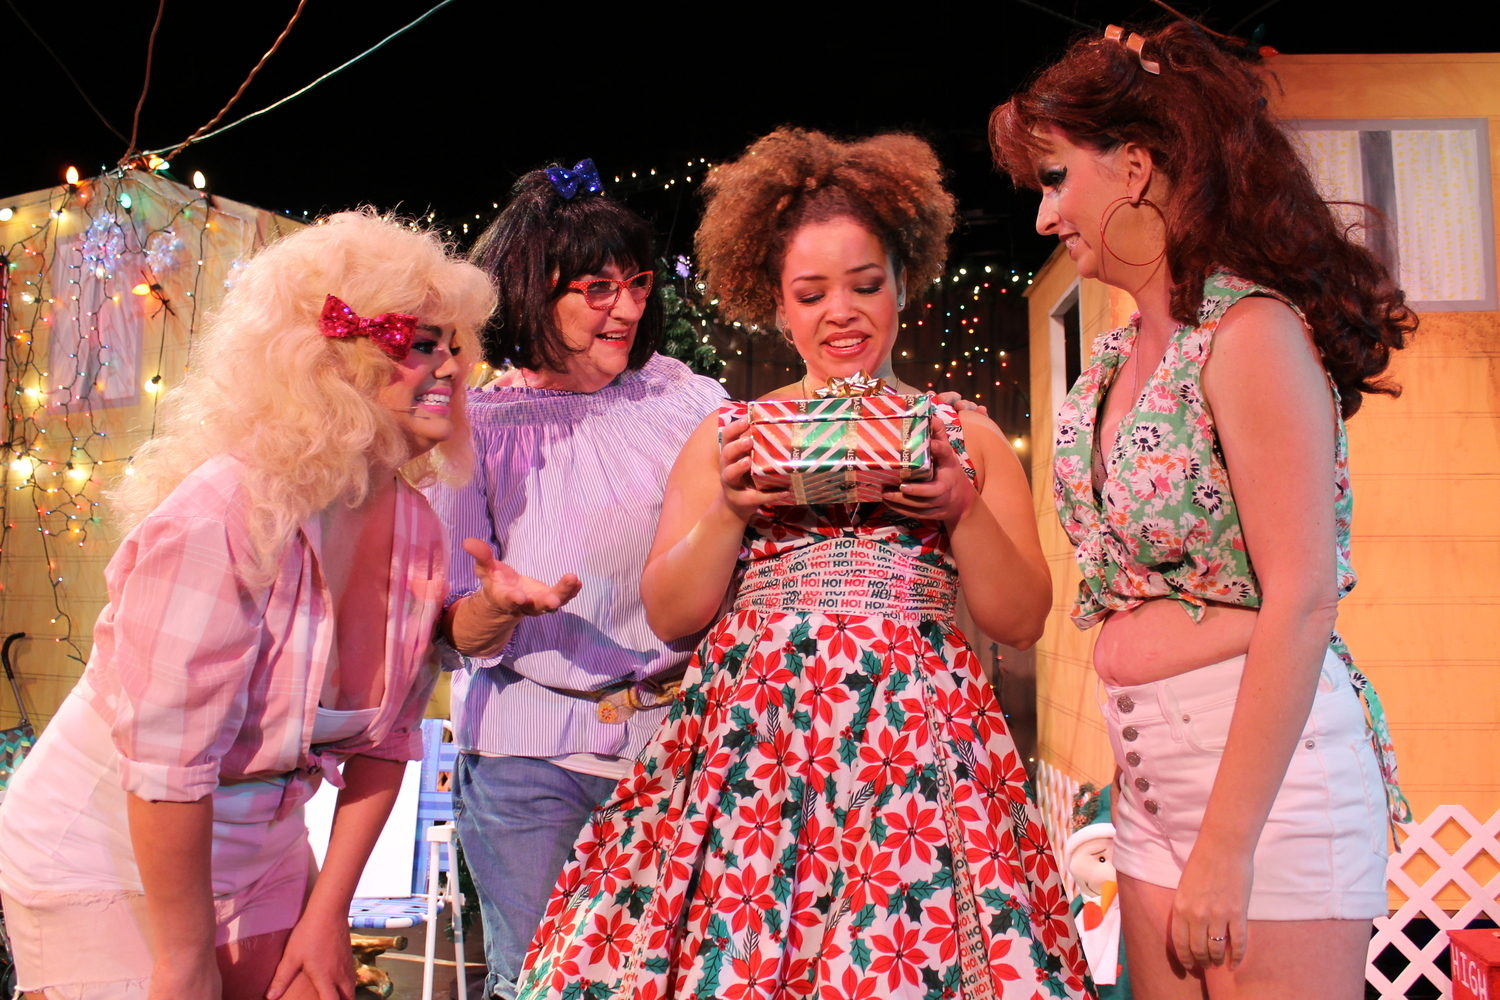 BWW Review: DTW Skewers the Armadillo Acres Trailer Park in a Terrific Holiday Send-up